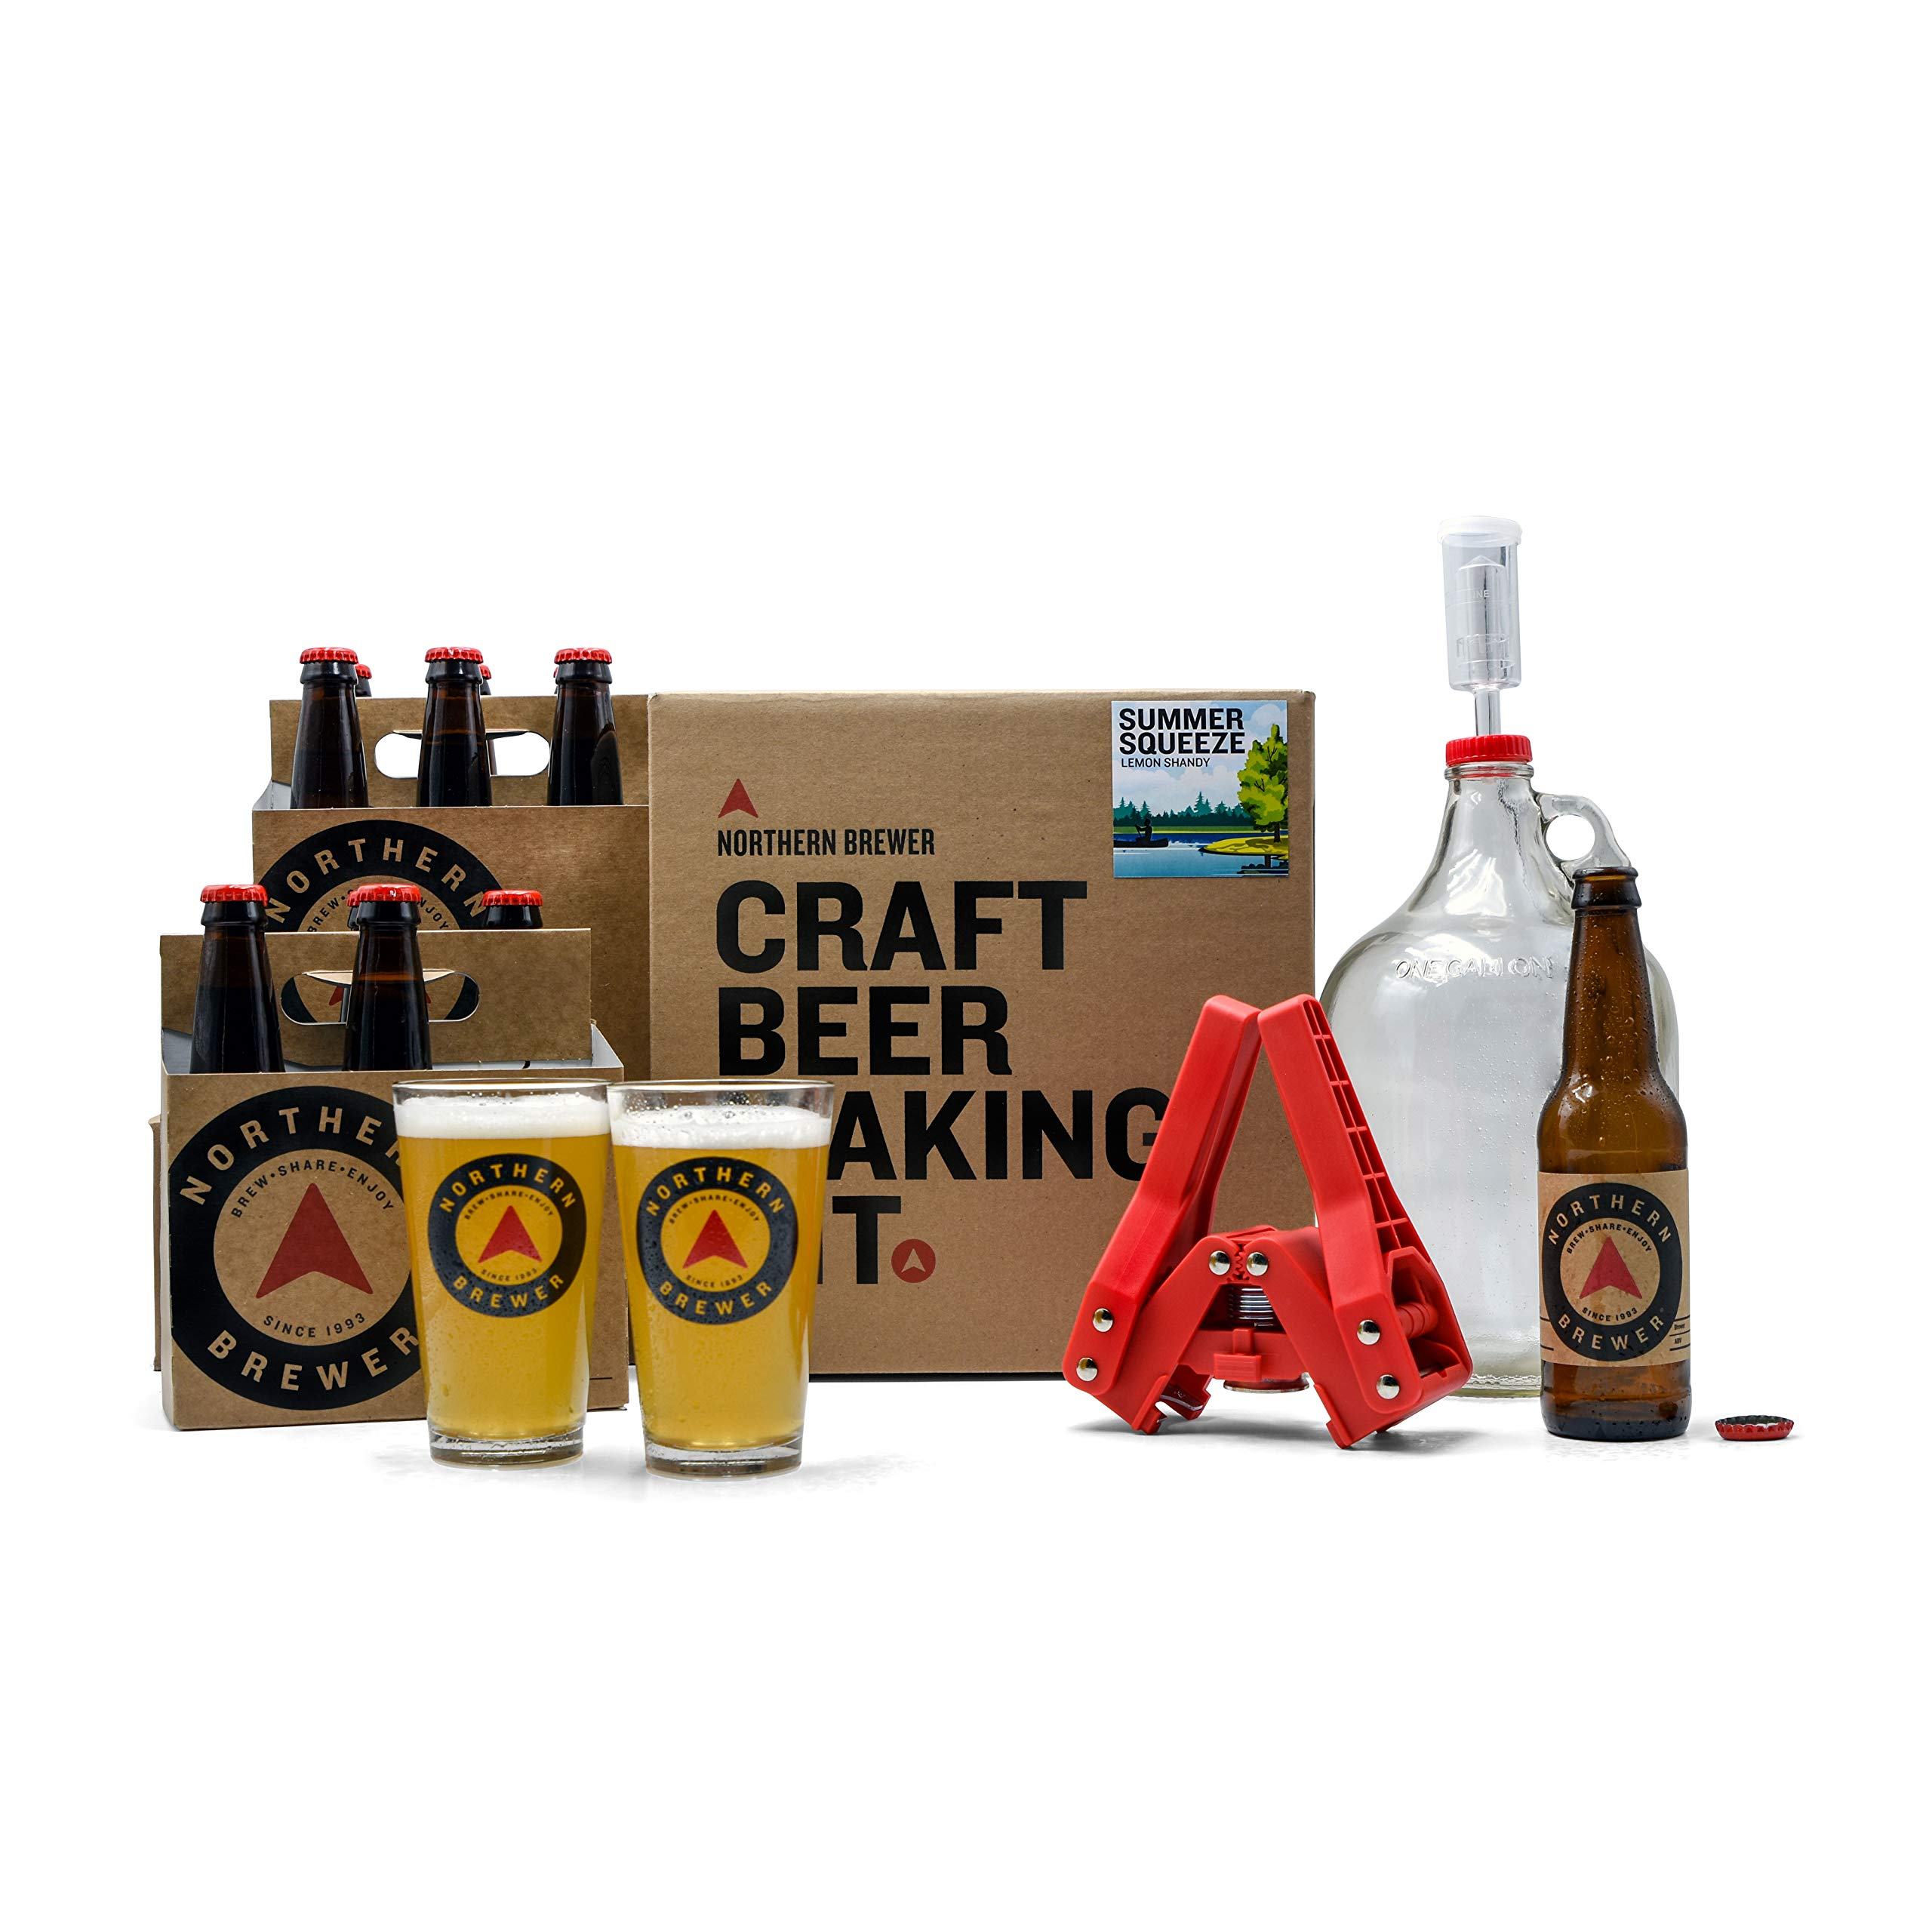 Northern Brewer - All Inclusive Gift Set 1 Gallon Homebrewing Starter Kit with Recipe (Limited Edition Summer Squeeze Shandy) by Northern Brewer